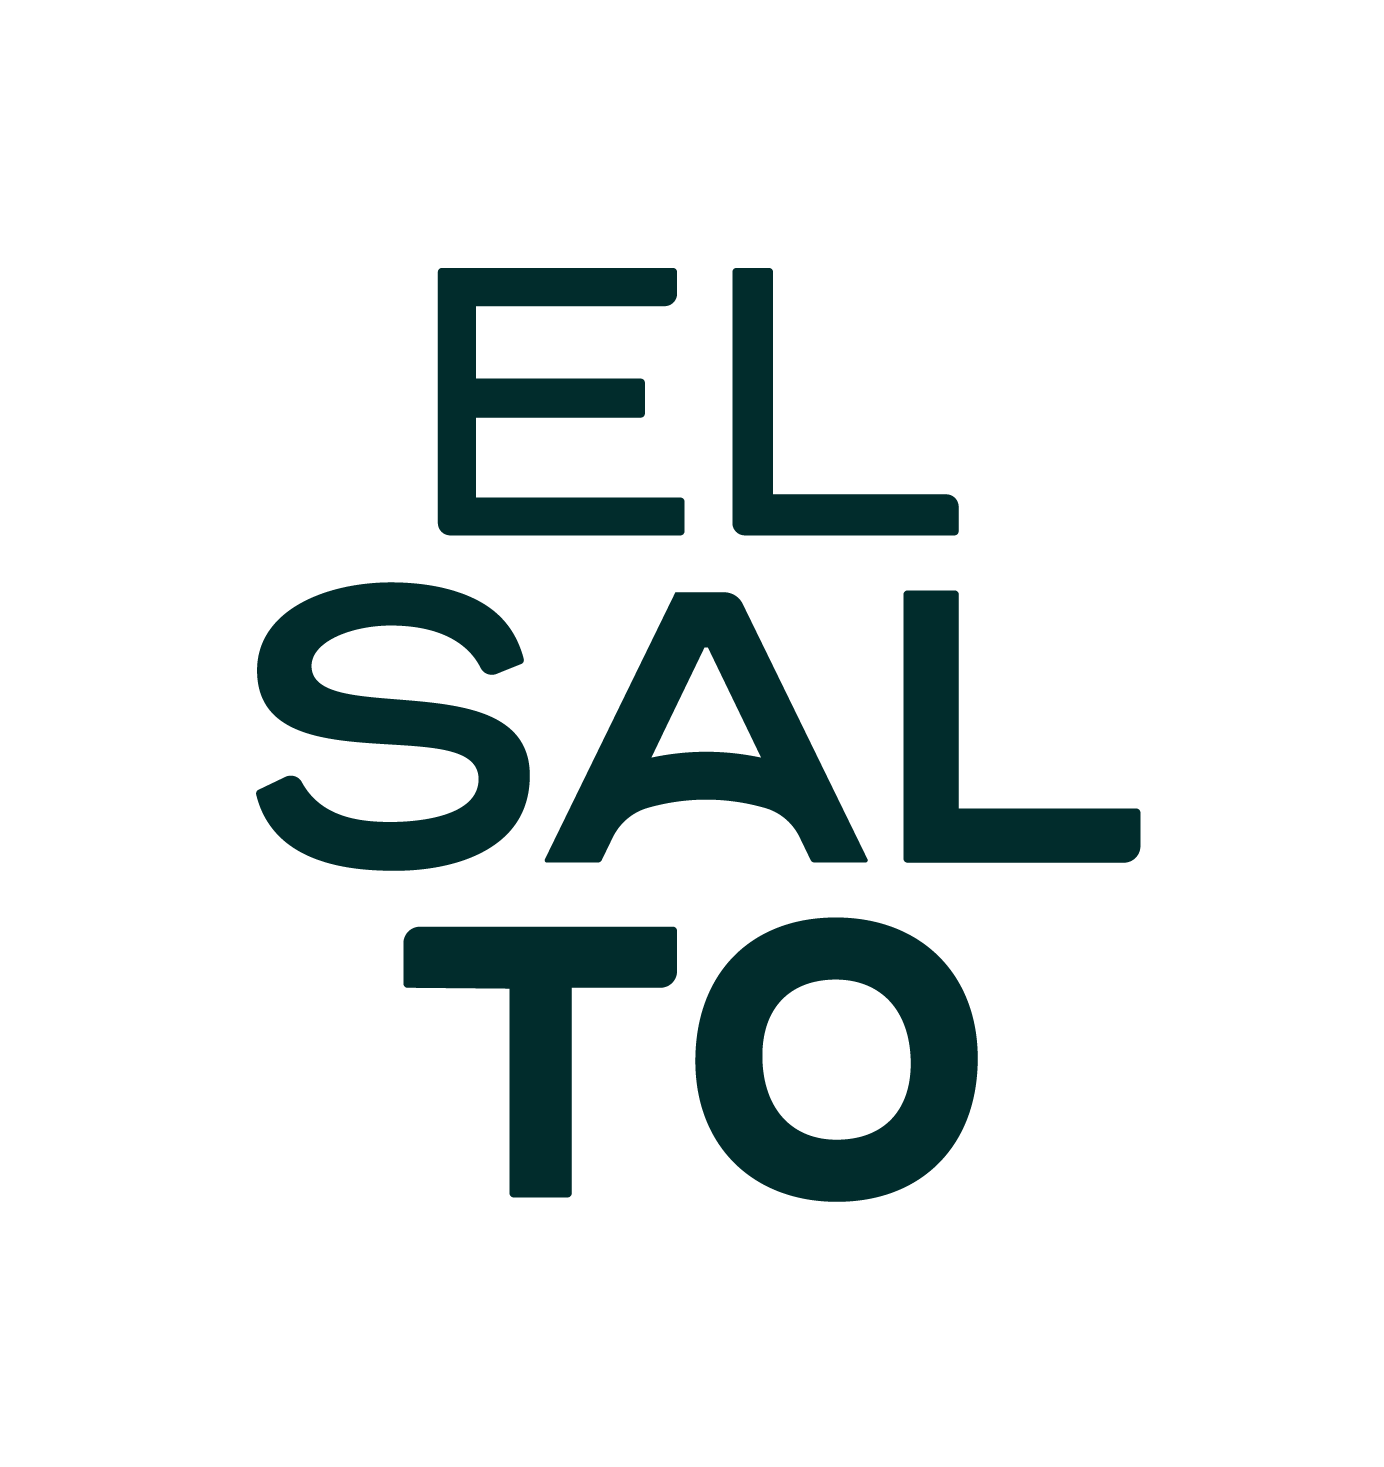 Elsaltovertical